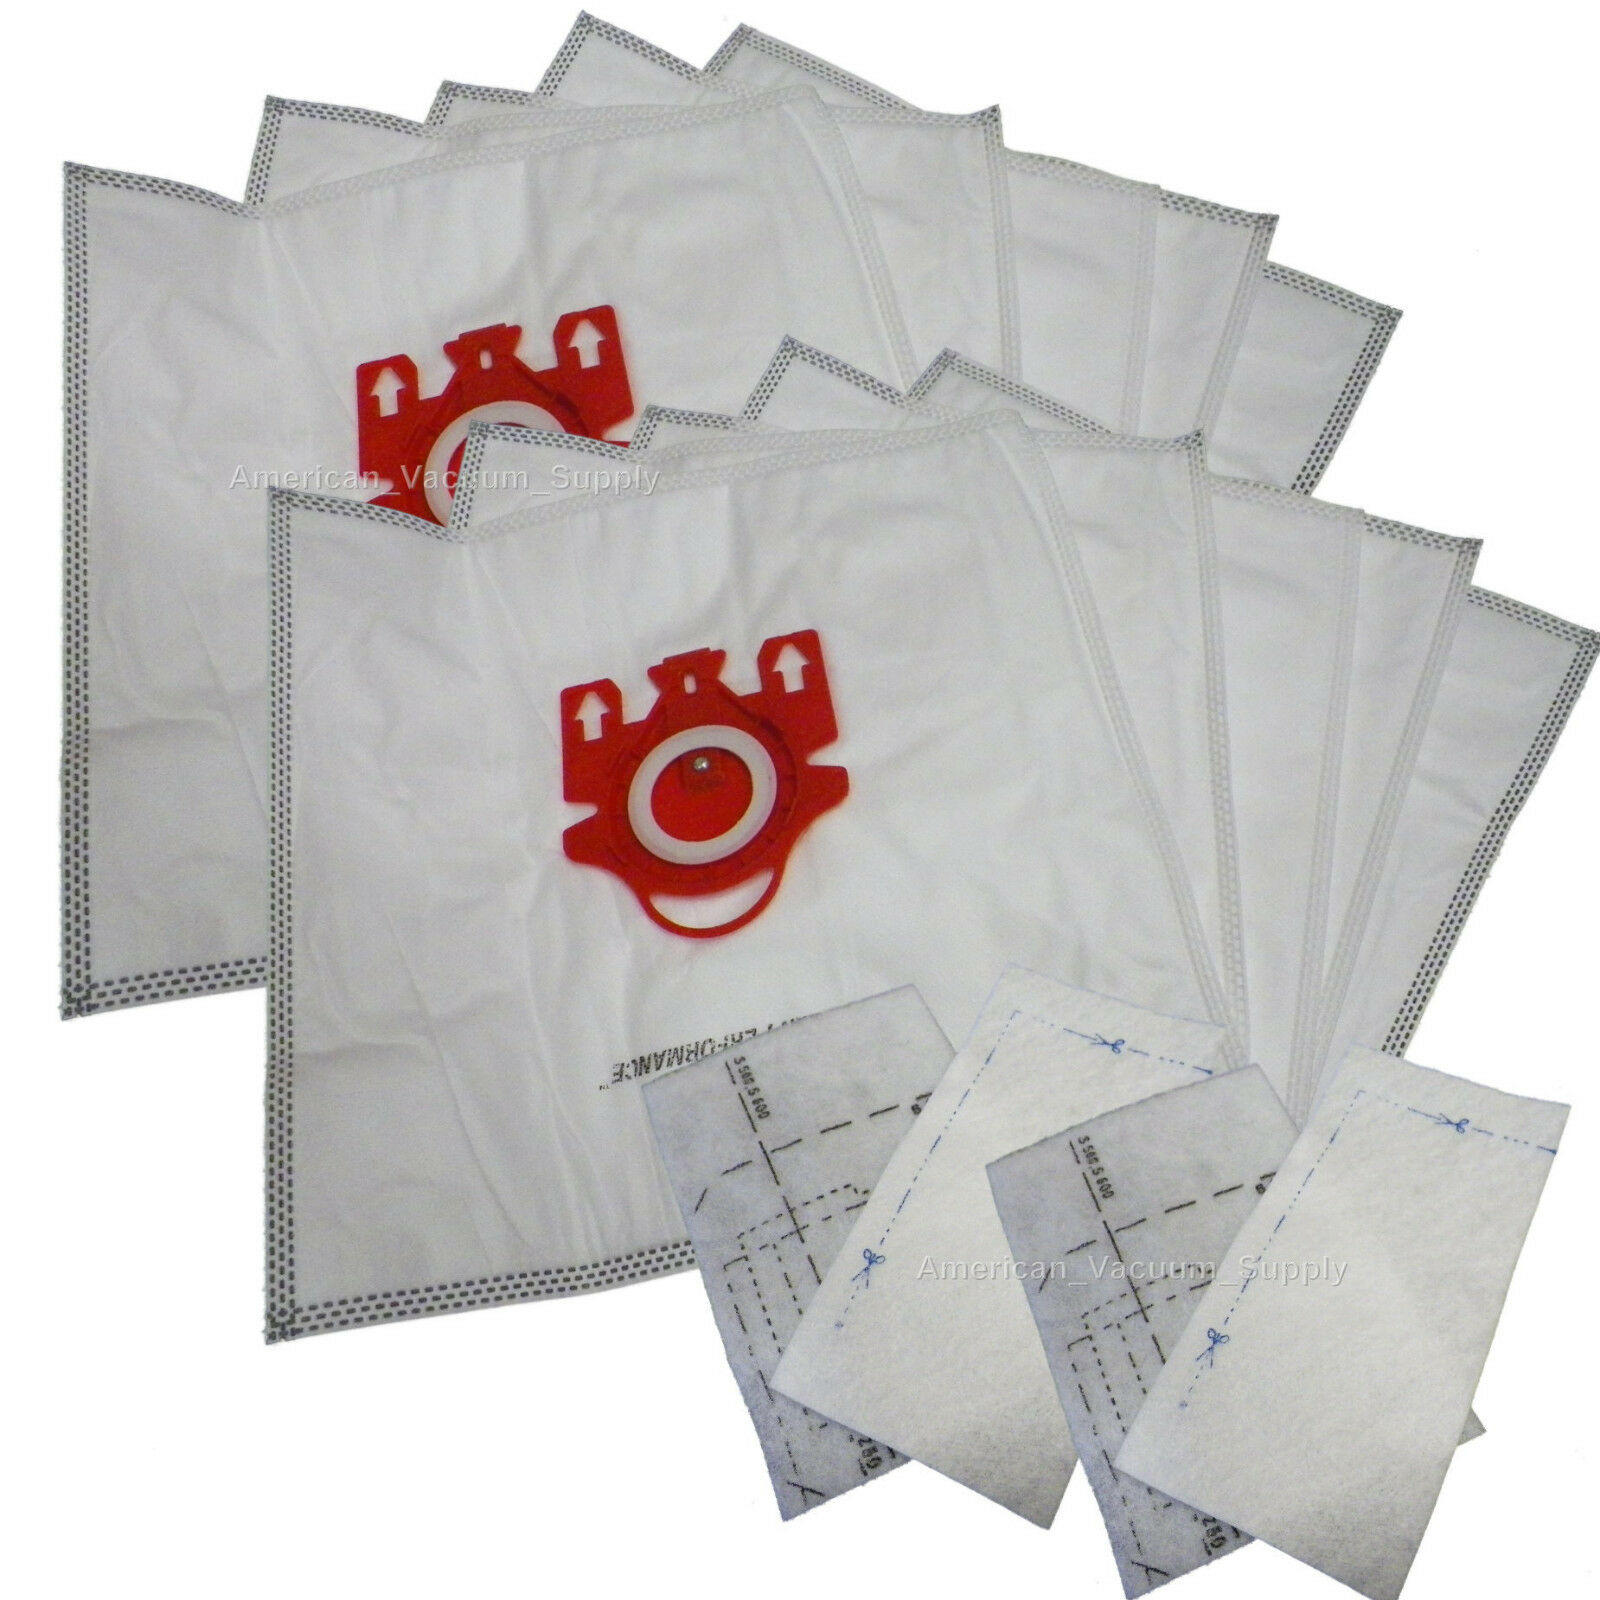 10 Bags for Miele FJM Synthetic Vacuum Cleaner Bag + 4